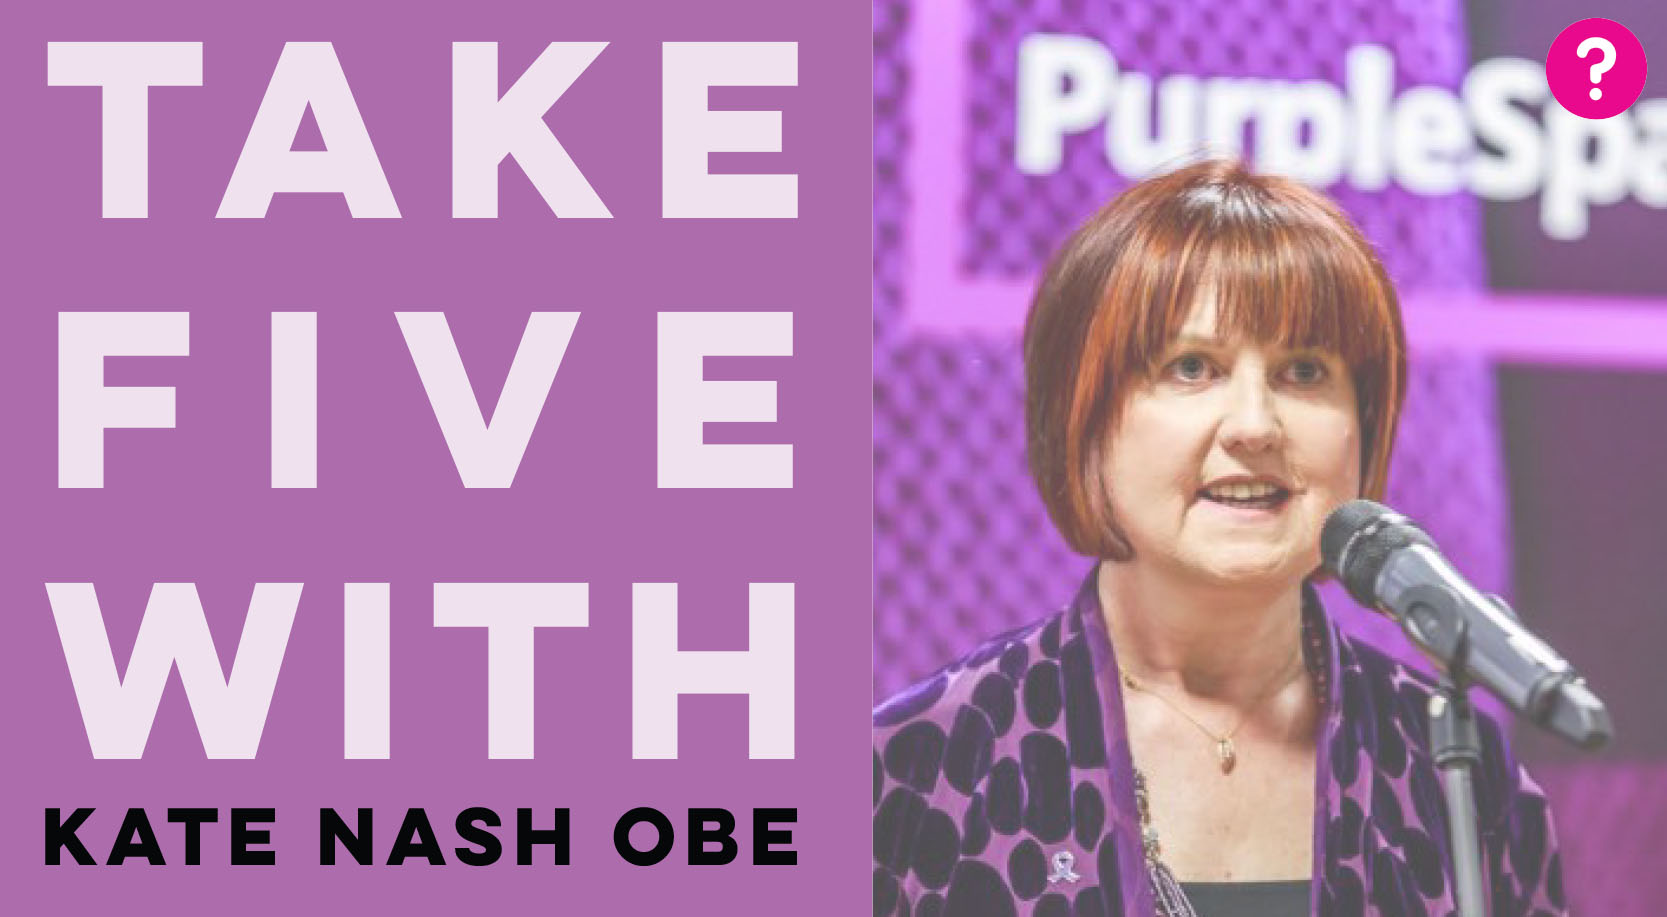 Take Five With Kate Nash OBE - Kate is the CEO of Purple Space, the world's only professional development hub for disability network leaders. Pictured is a closeup of Kate speaking into a microphone at an event with the Purple Space sign behind her